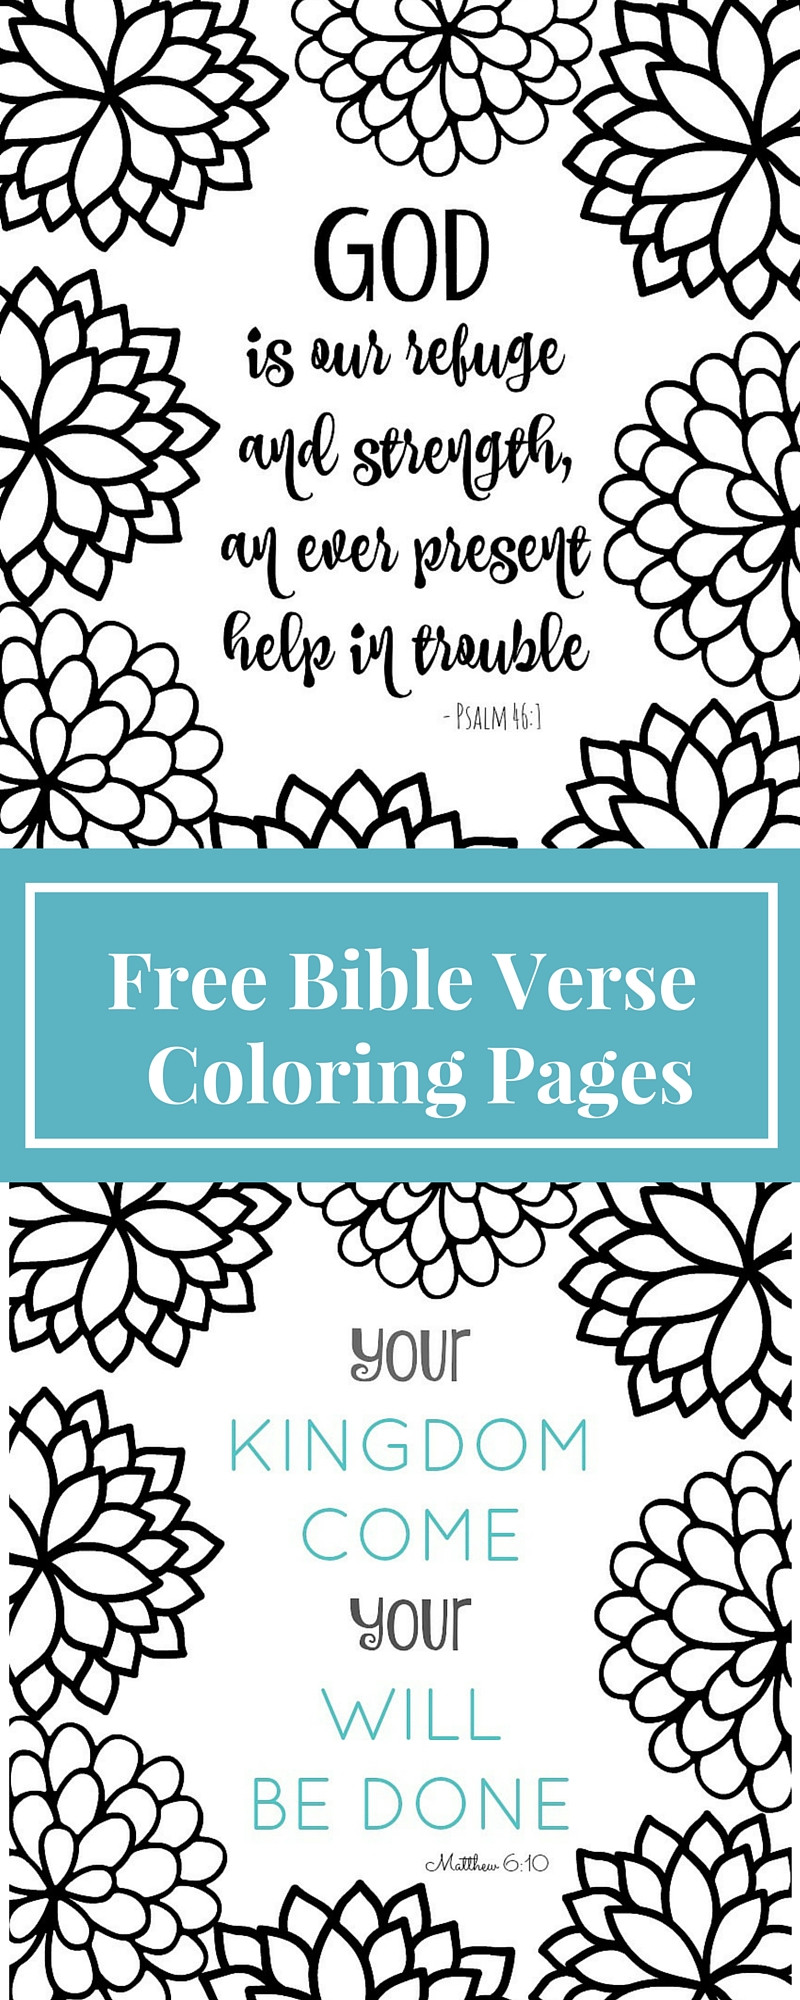 Scripture Coloring Pages For Adults  Free Printable Bible Verse Coloring Pages with Bursting